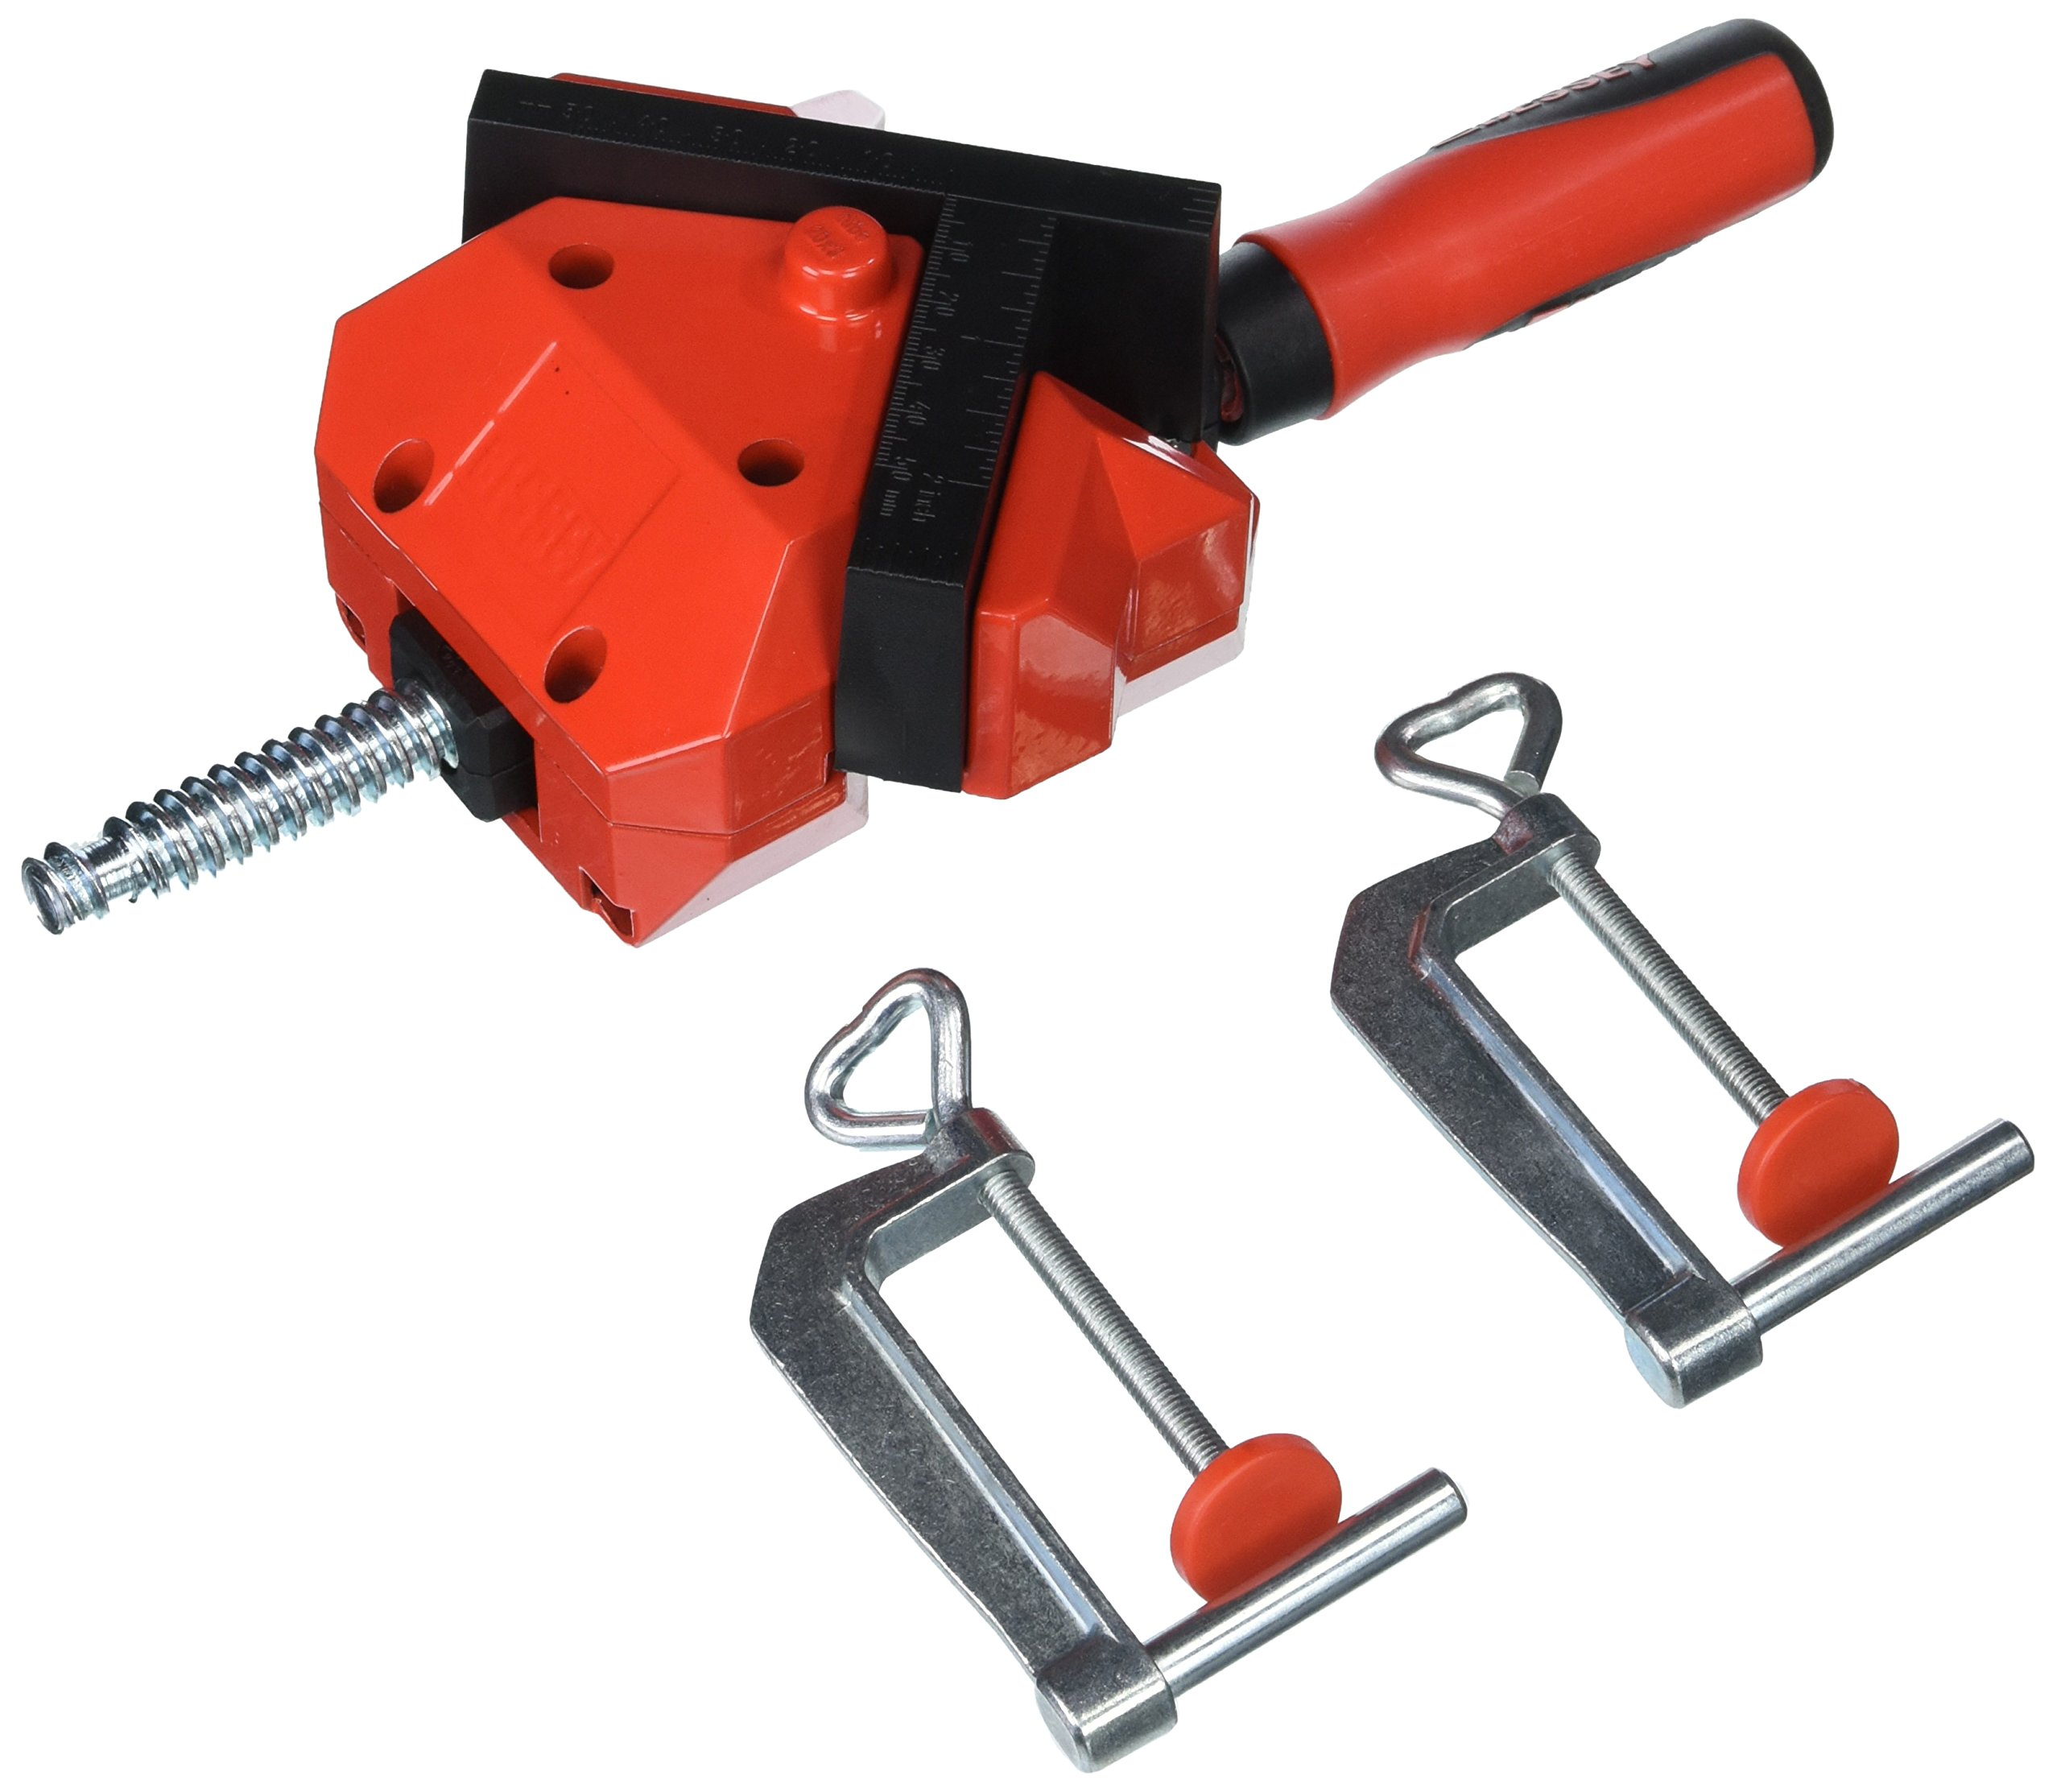 Bessey Tools WS-3+2K 90 Degree Angle Clamp for T Joints and Mitered Corners by Bessey Tools